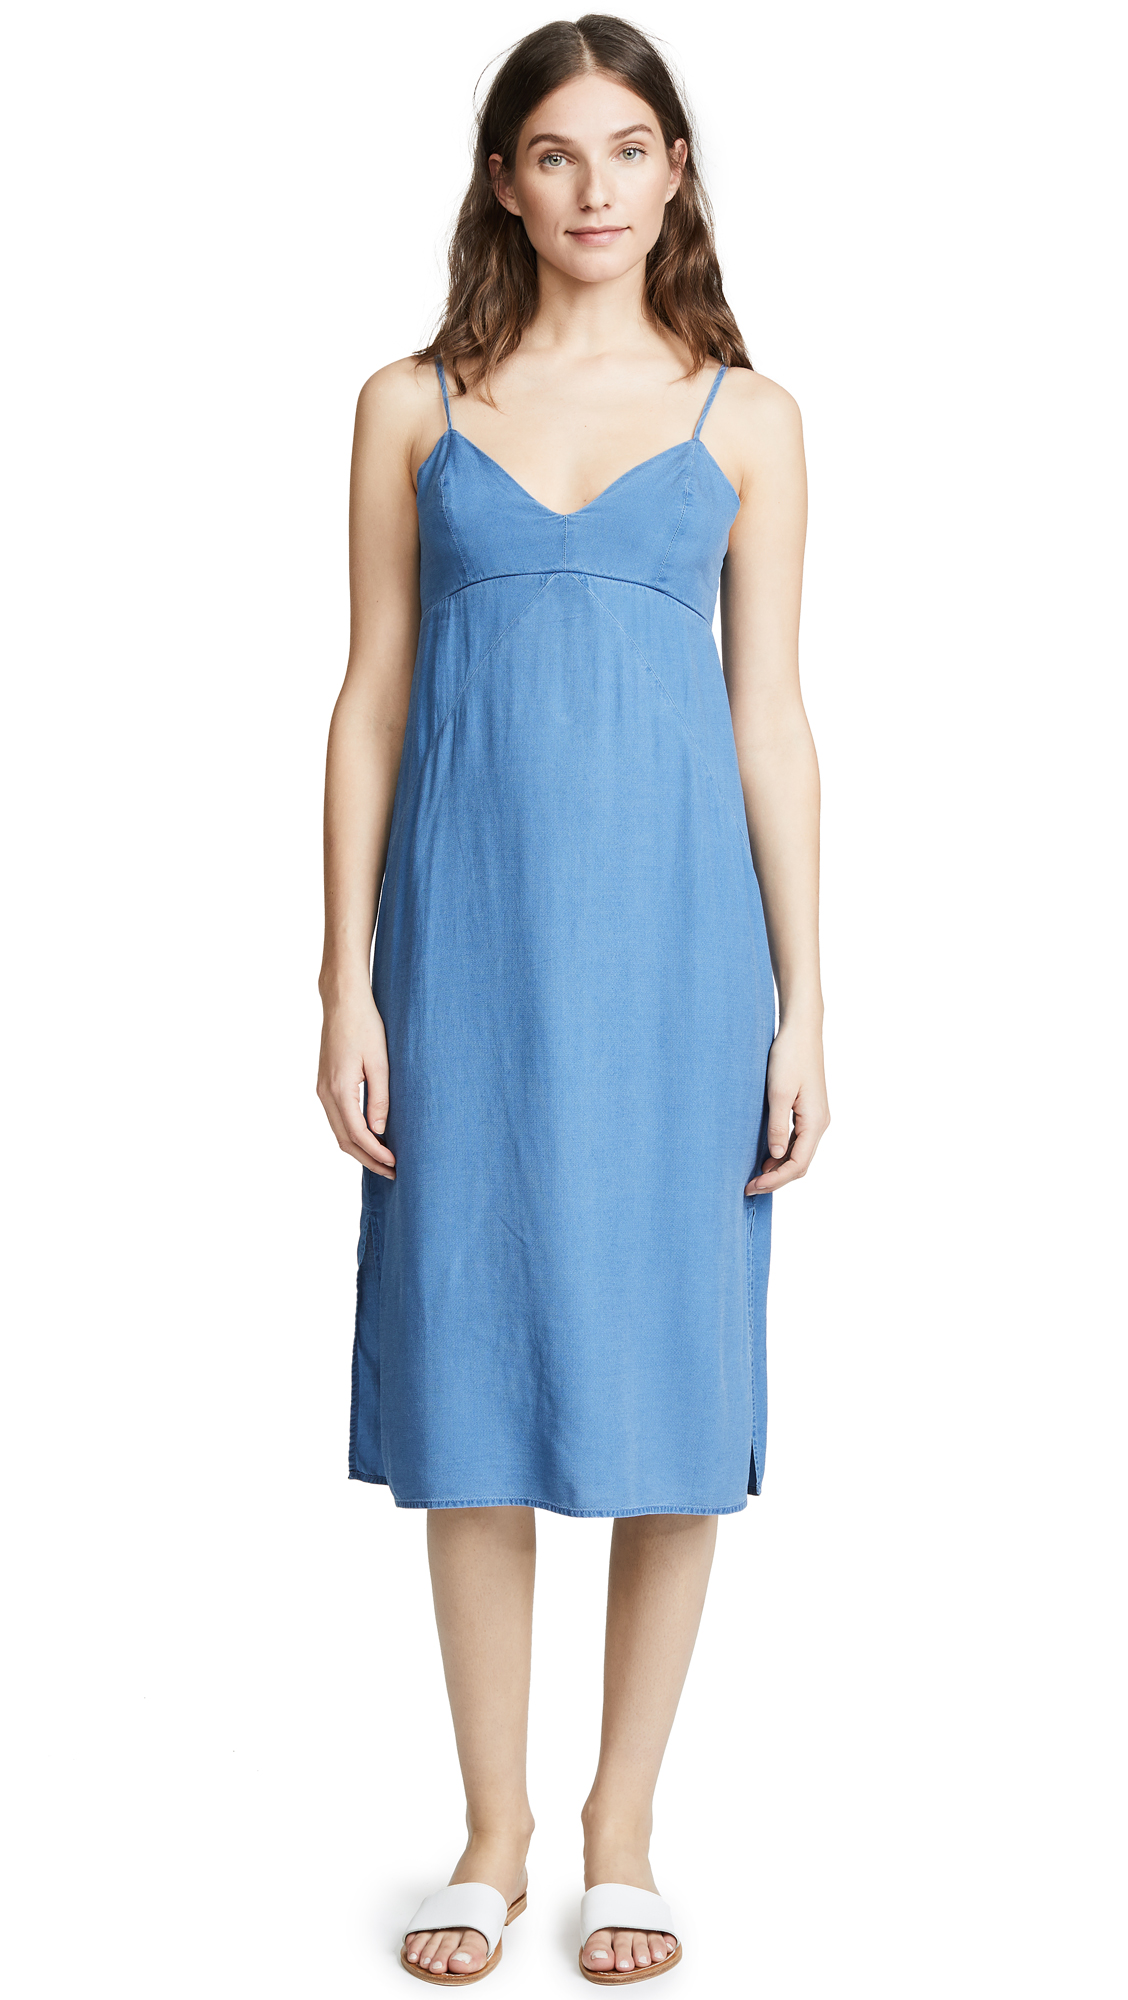 Splendid Skylight Slip Dress - Medium Wash